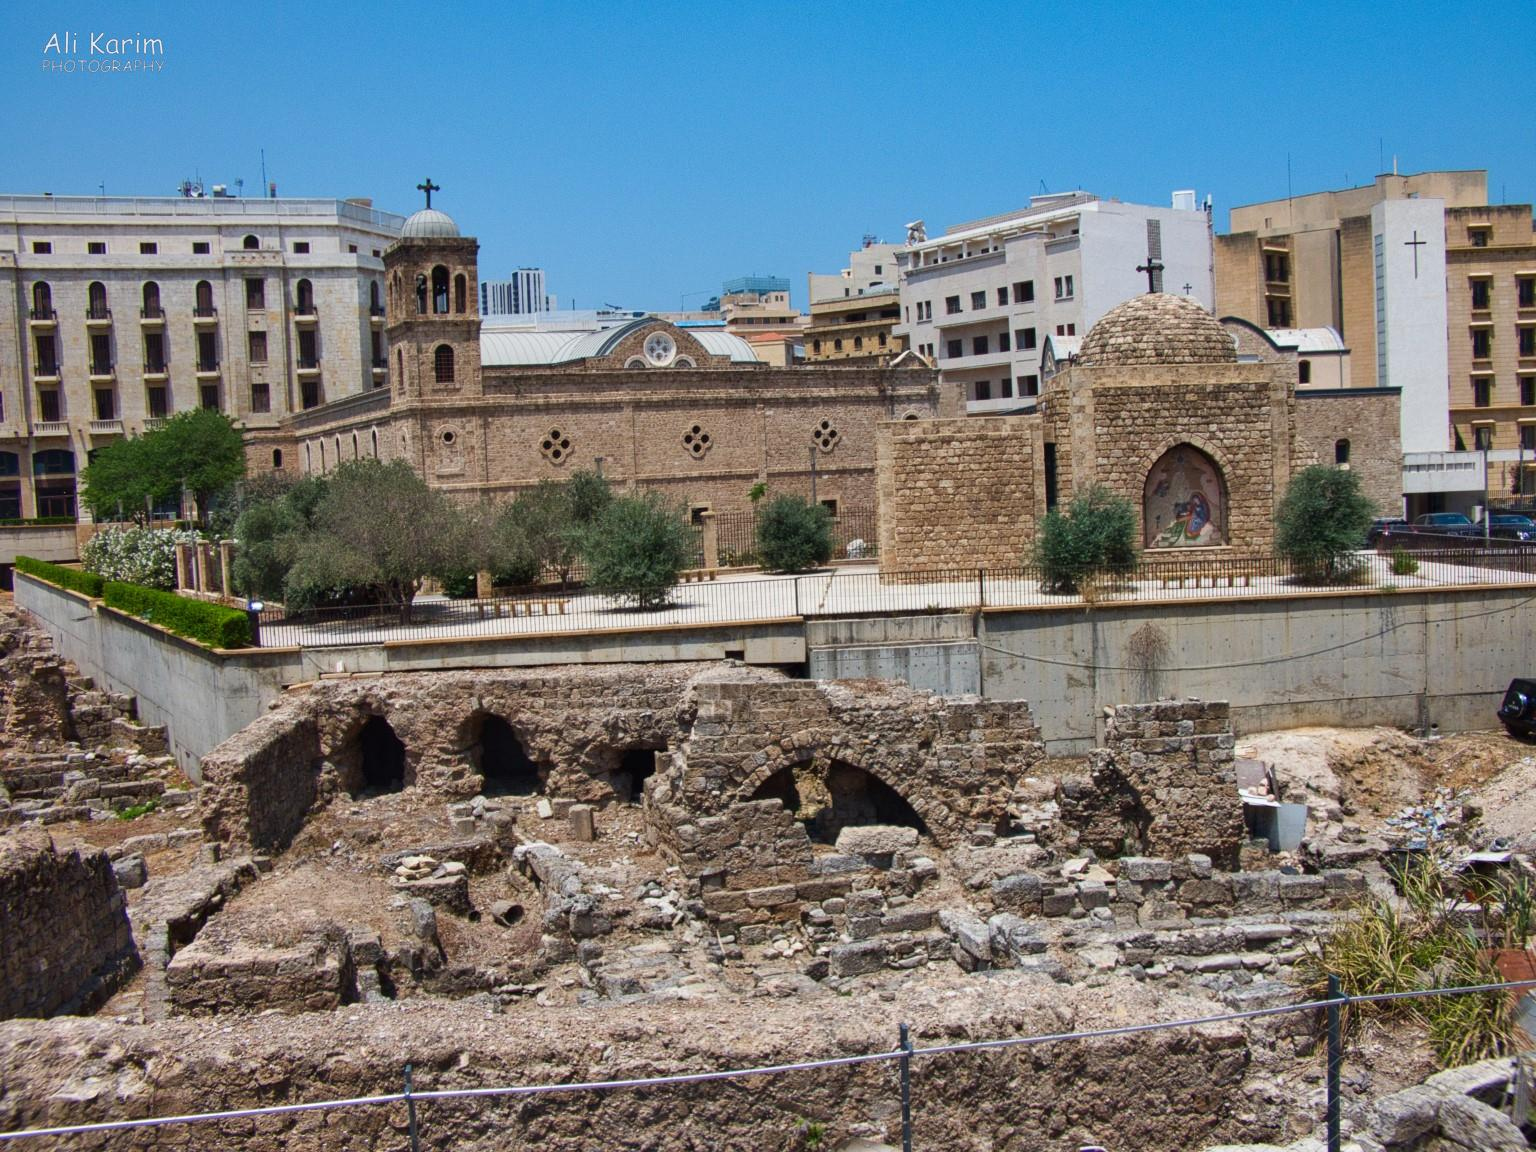 Beirut Roman ruins discovered, next to the Mohammed Al-Amin mosque, behind a Greek Orthodox church